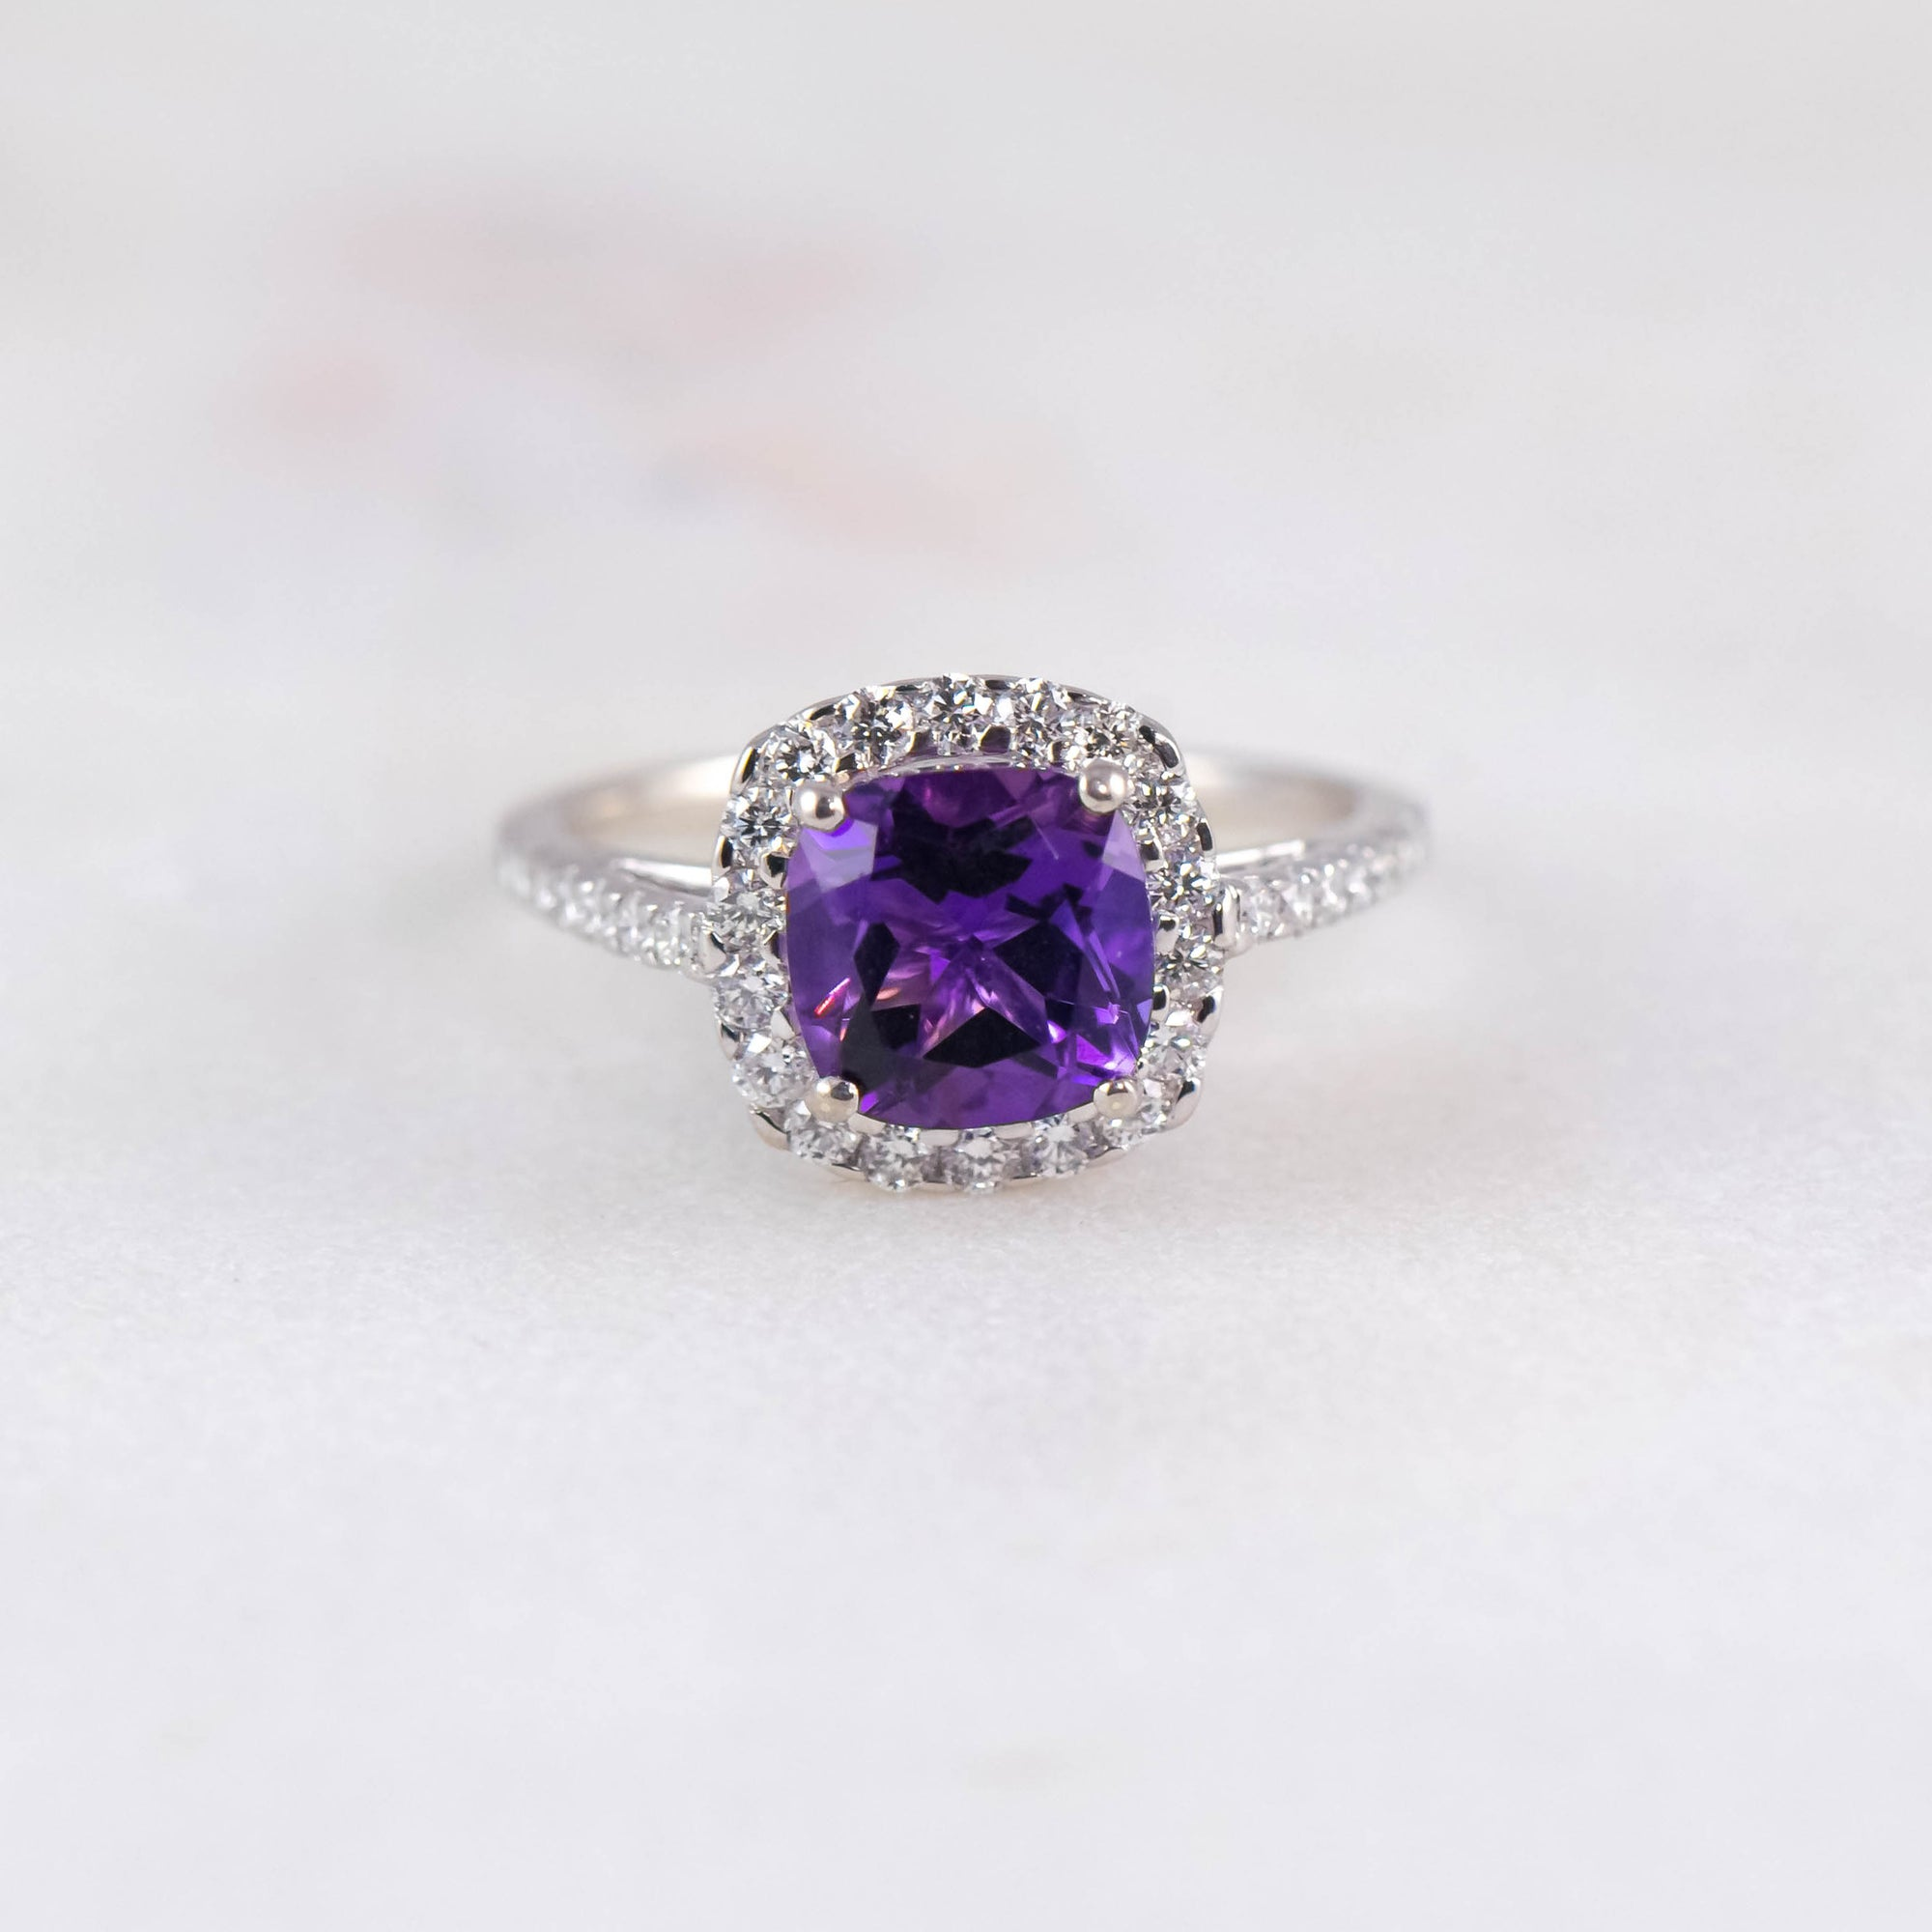 Bespoke Tanzanite & Diamond Ring